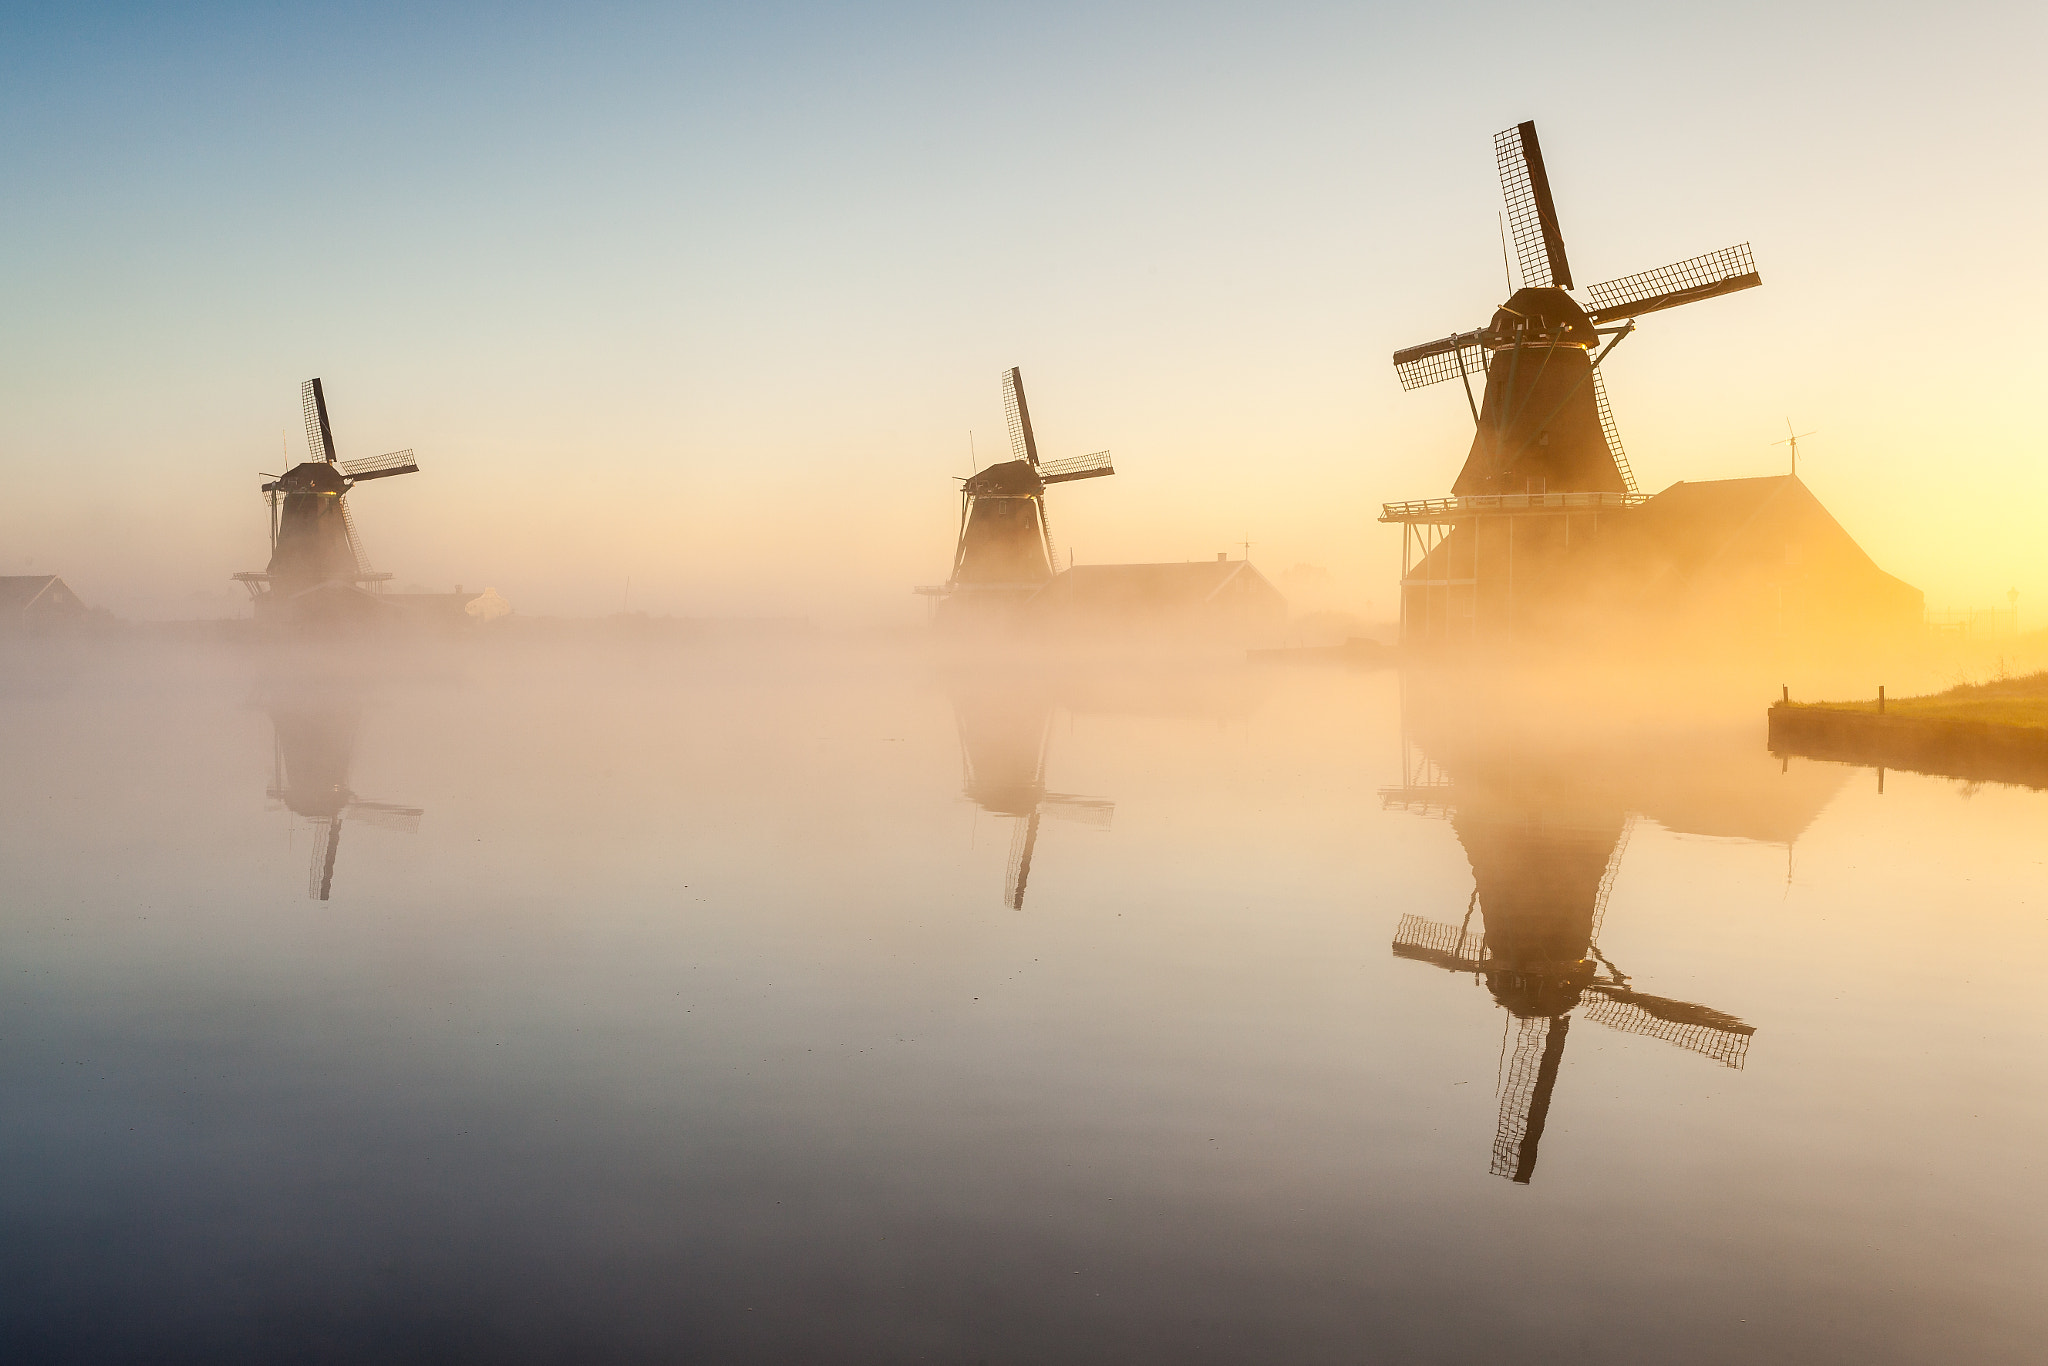 Photograph Misty morning by Mirco Gugg on 500px